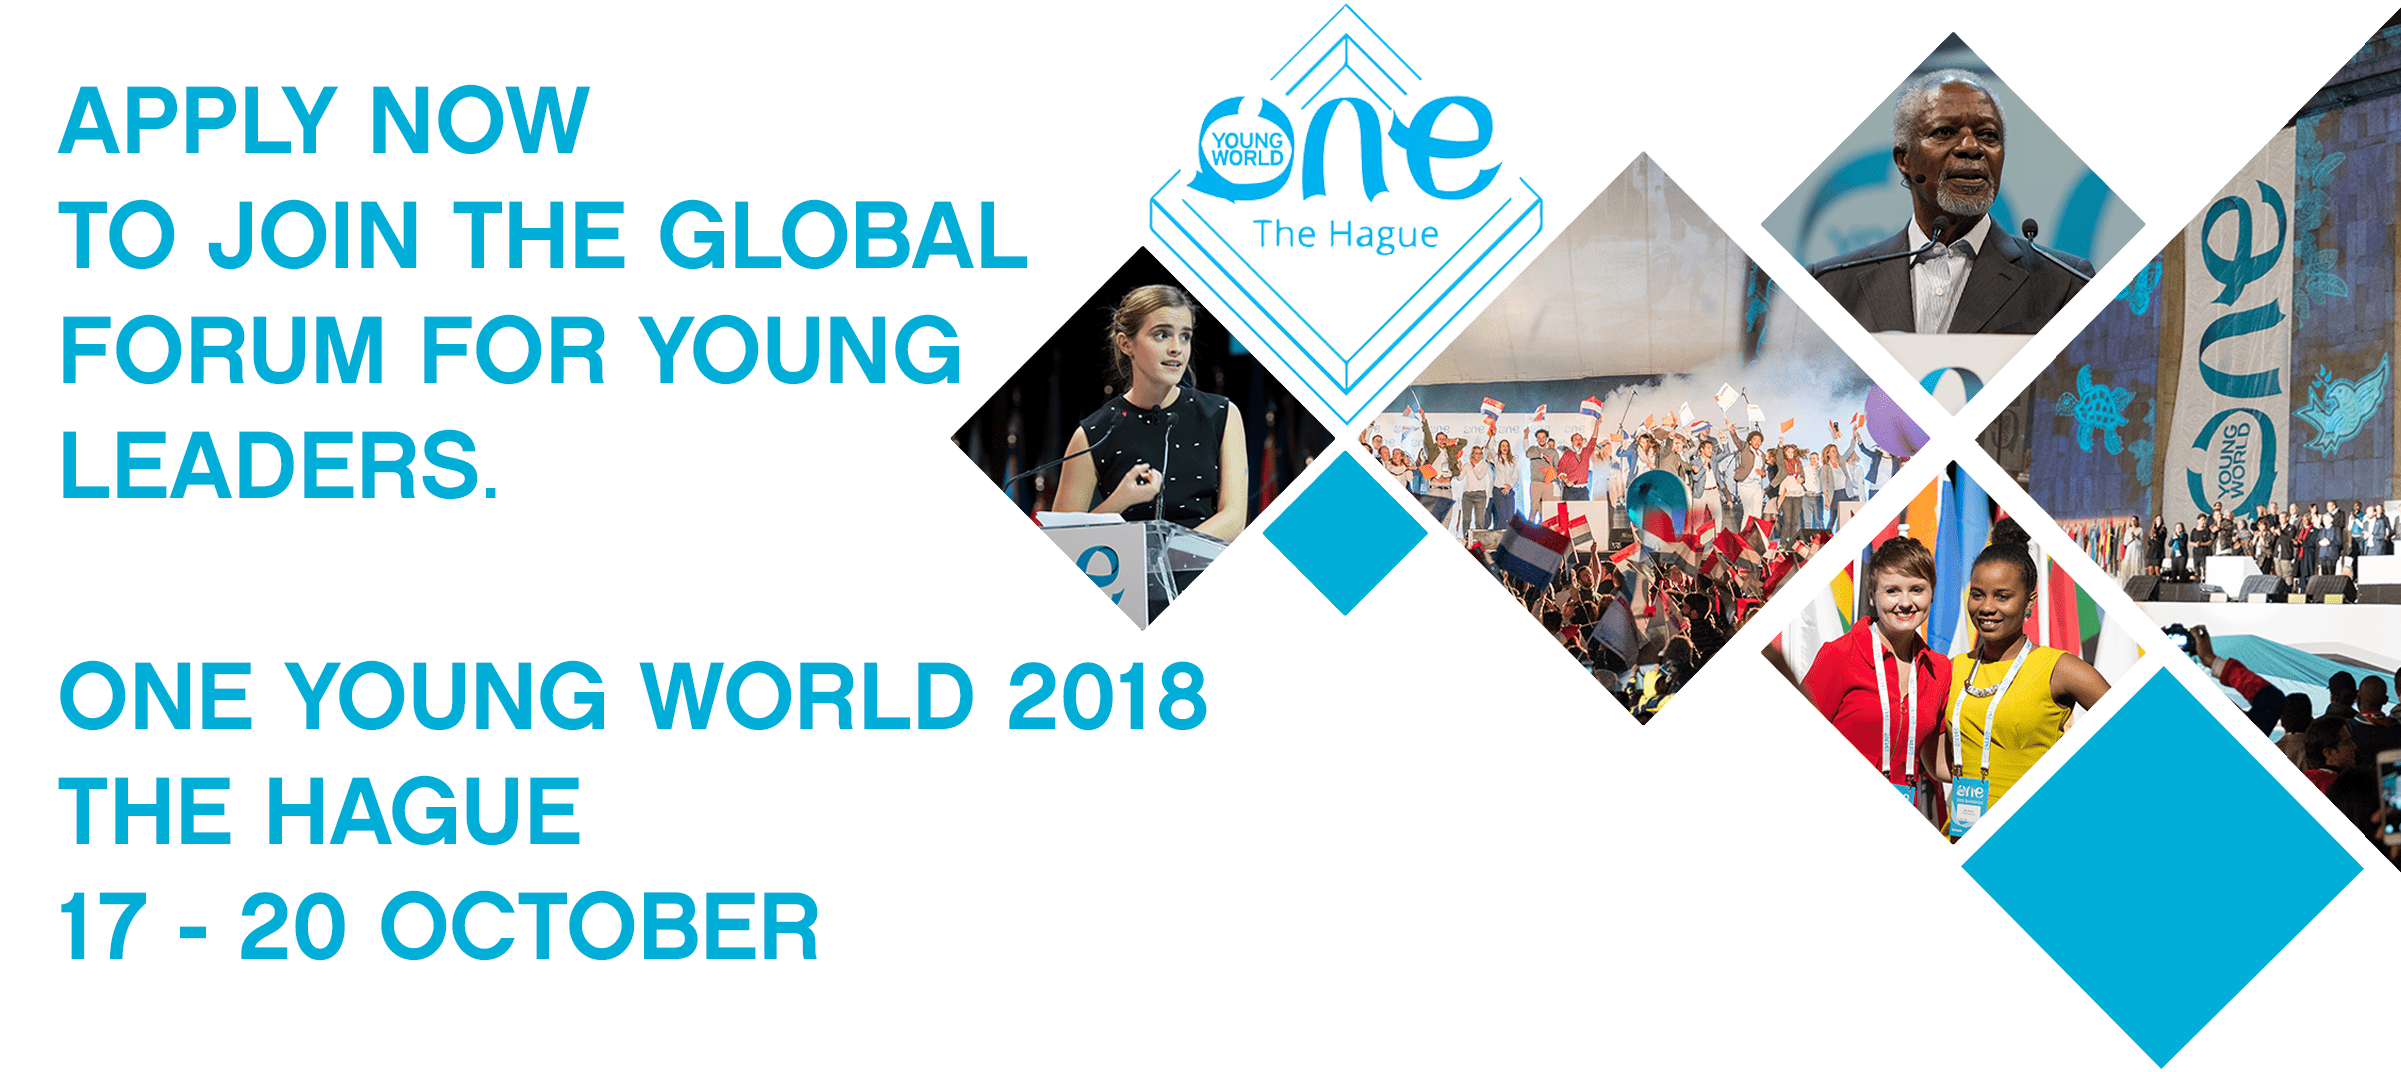 one young world 2018 application